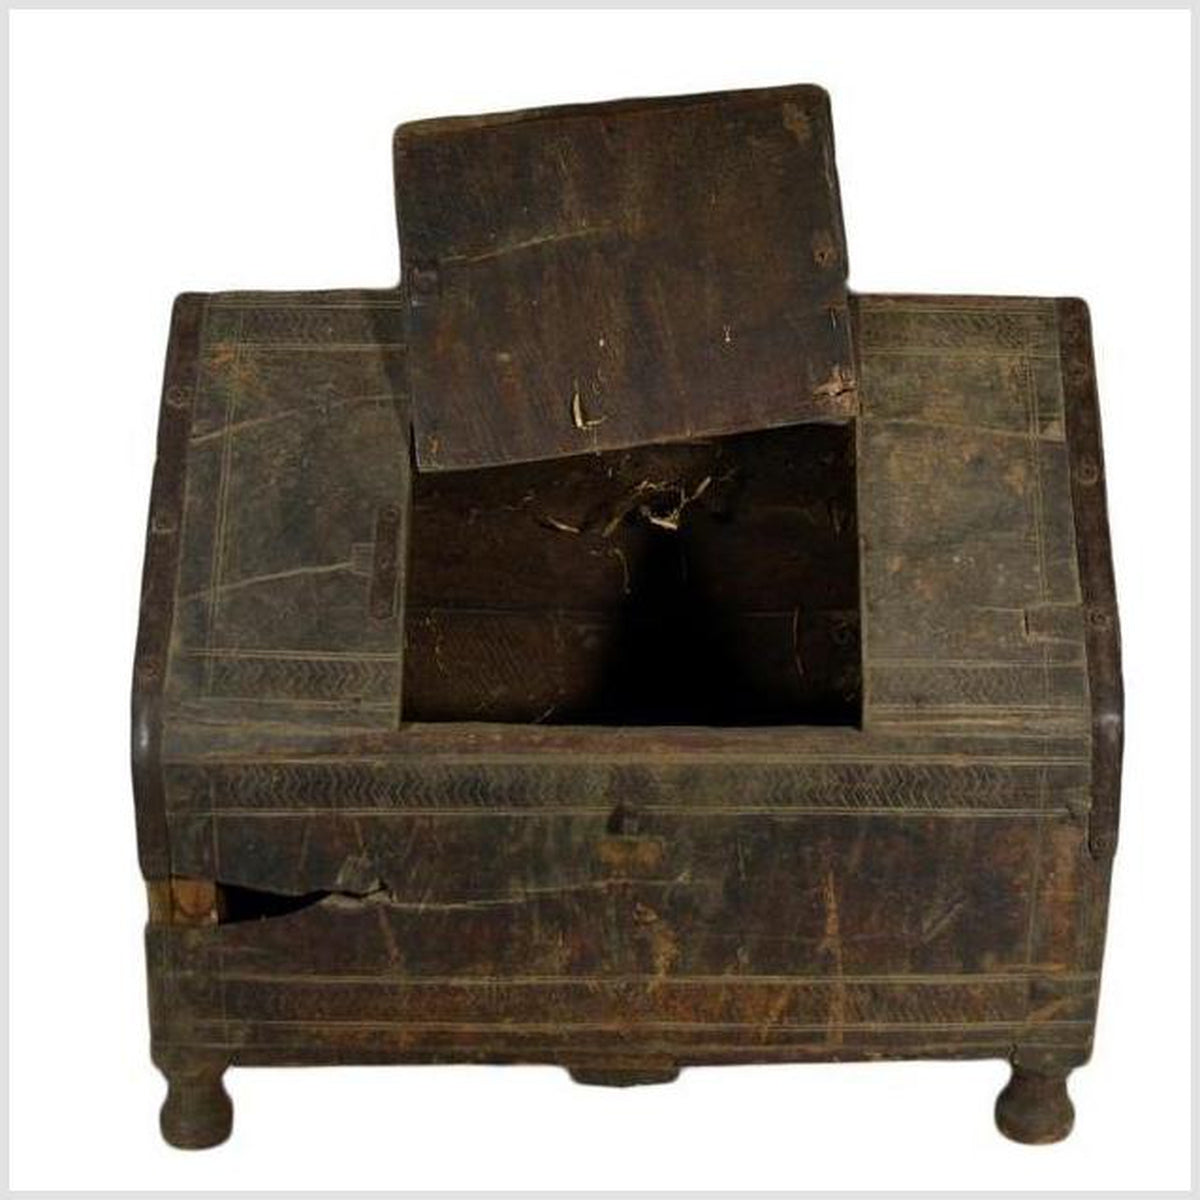 Antique Tibetan Dowry Chest 19th Century Carved Wood Himachal Pradish Ethnic Trunk Sideboard Indian Chest Primitive Tribal Chest